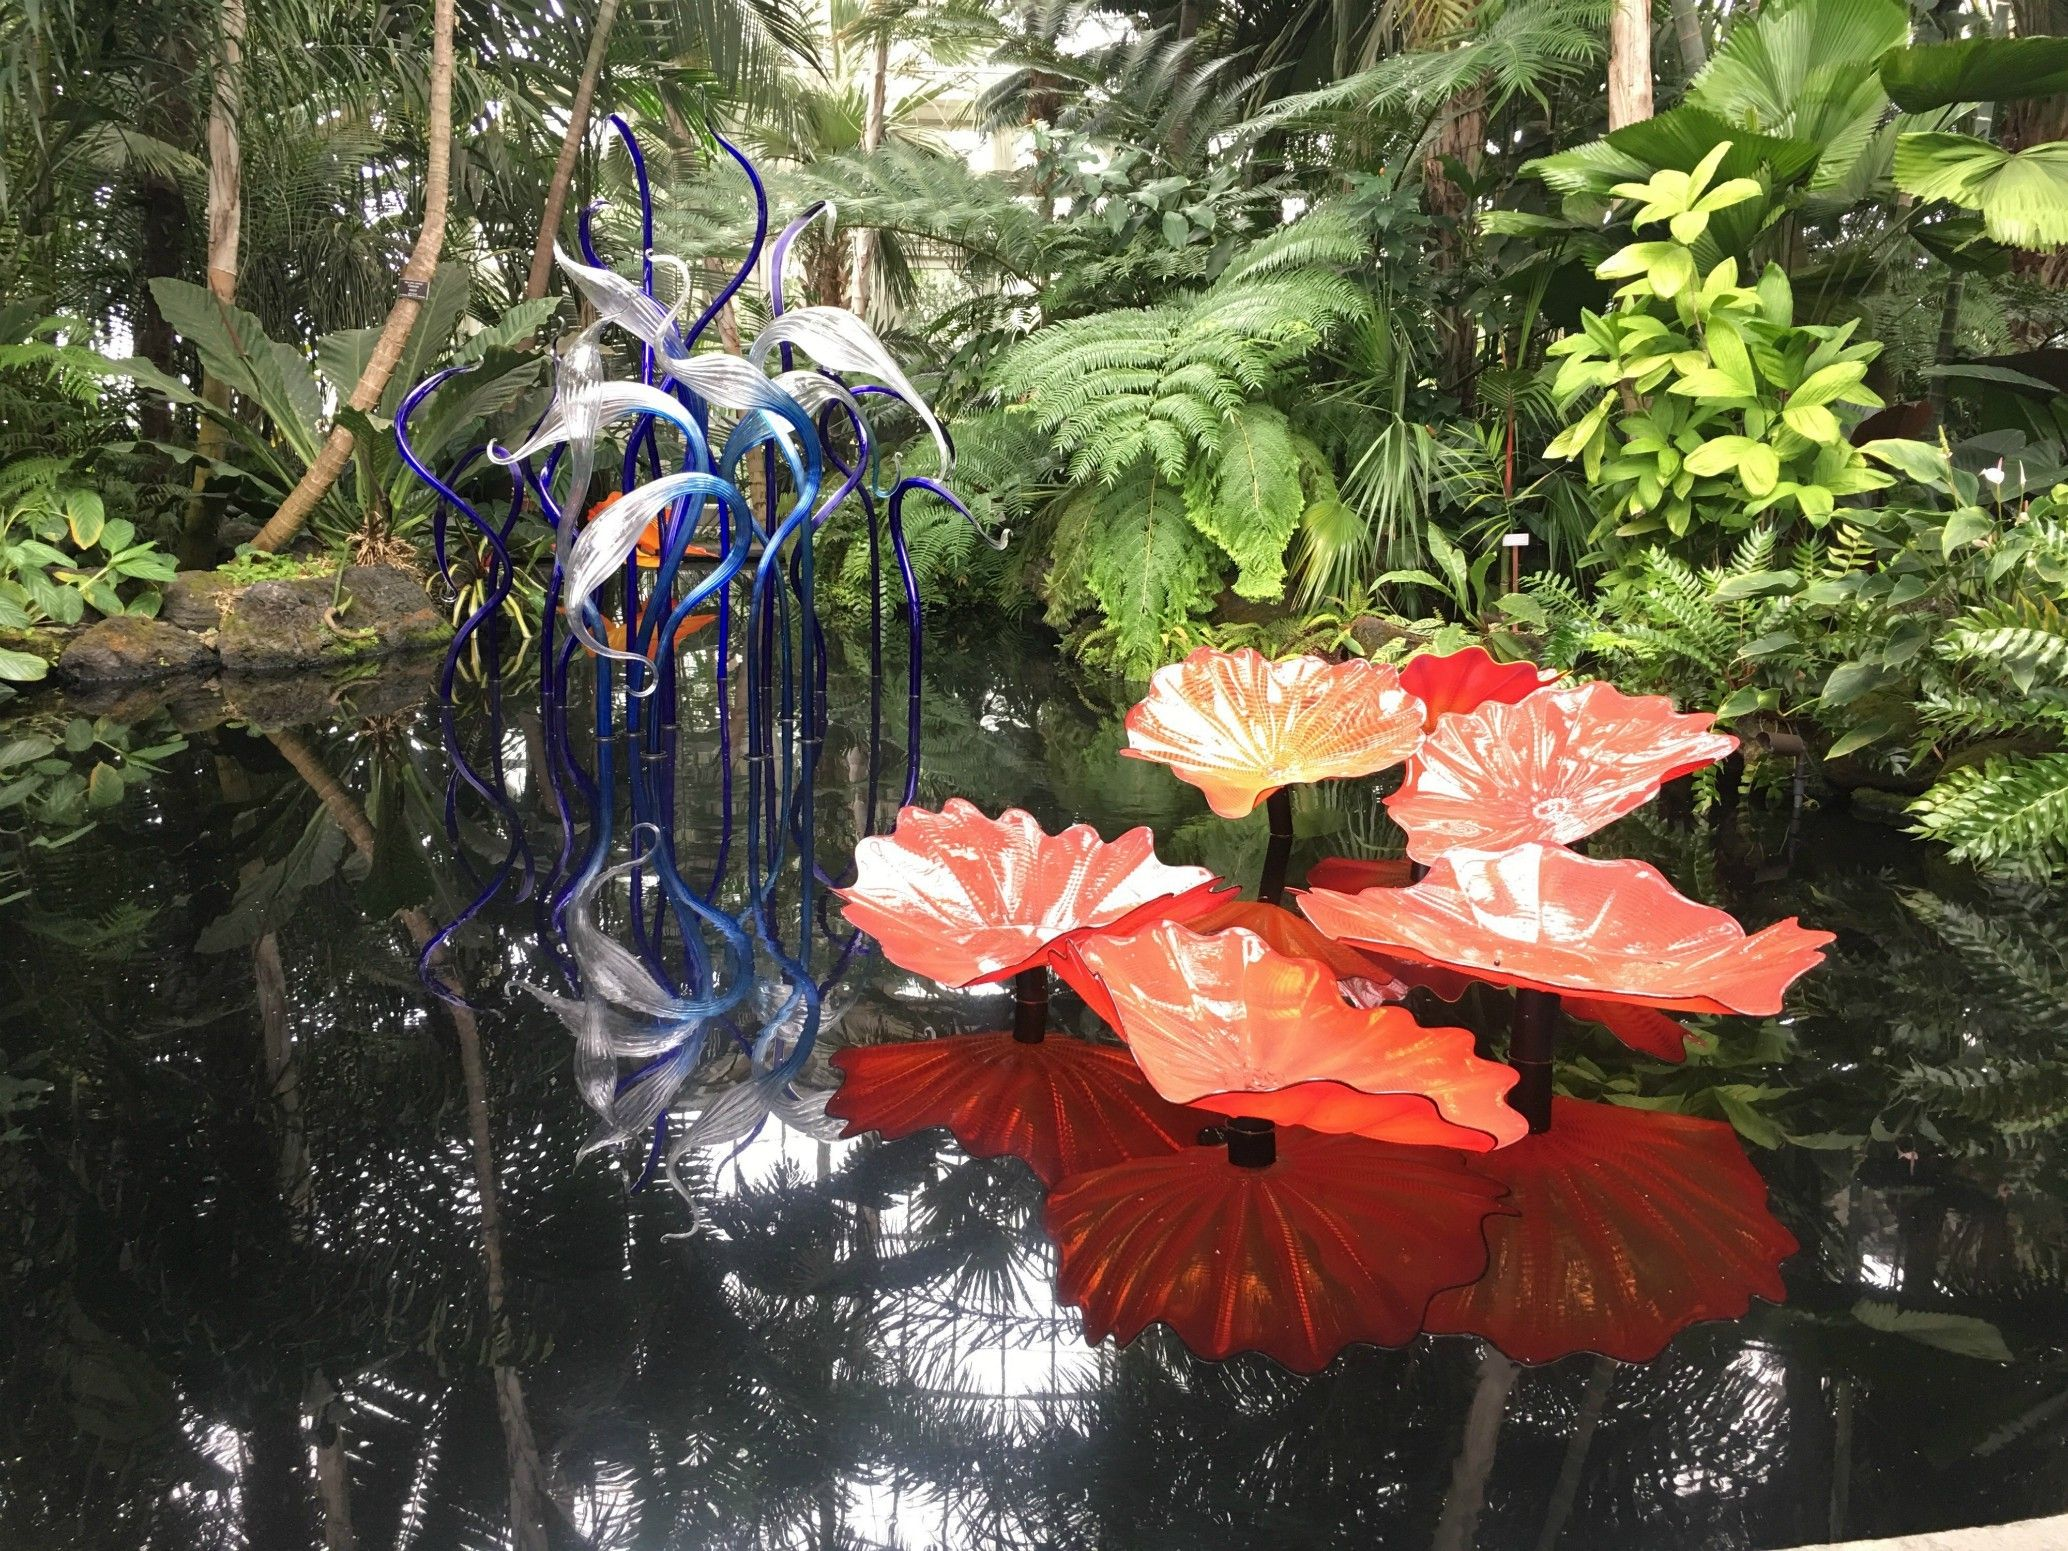 28d0ceaaaa824b37345eb47f7897b1e6 - Chihuly Exhibit At Ny Botanical Gardens